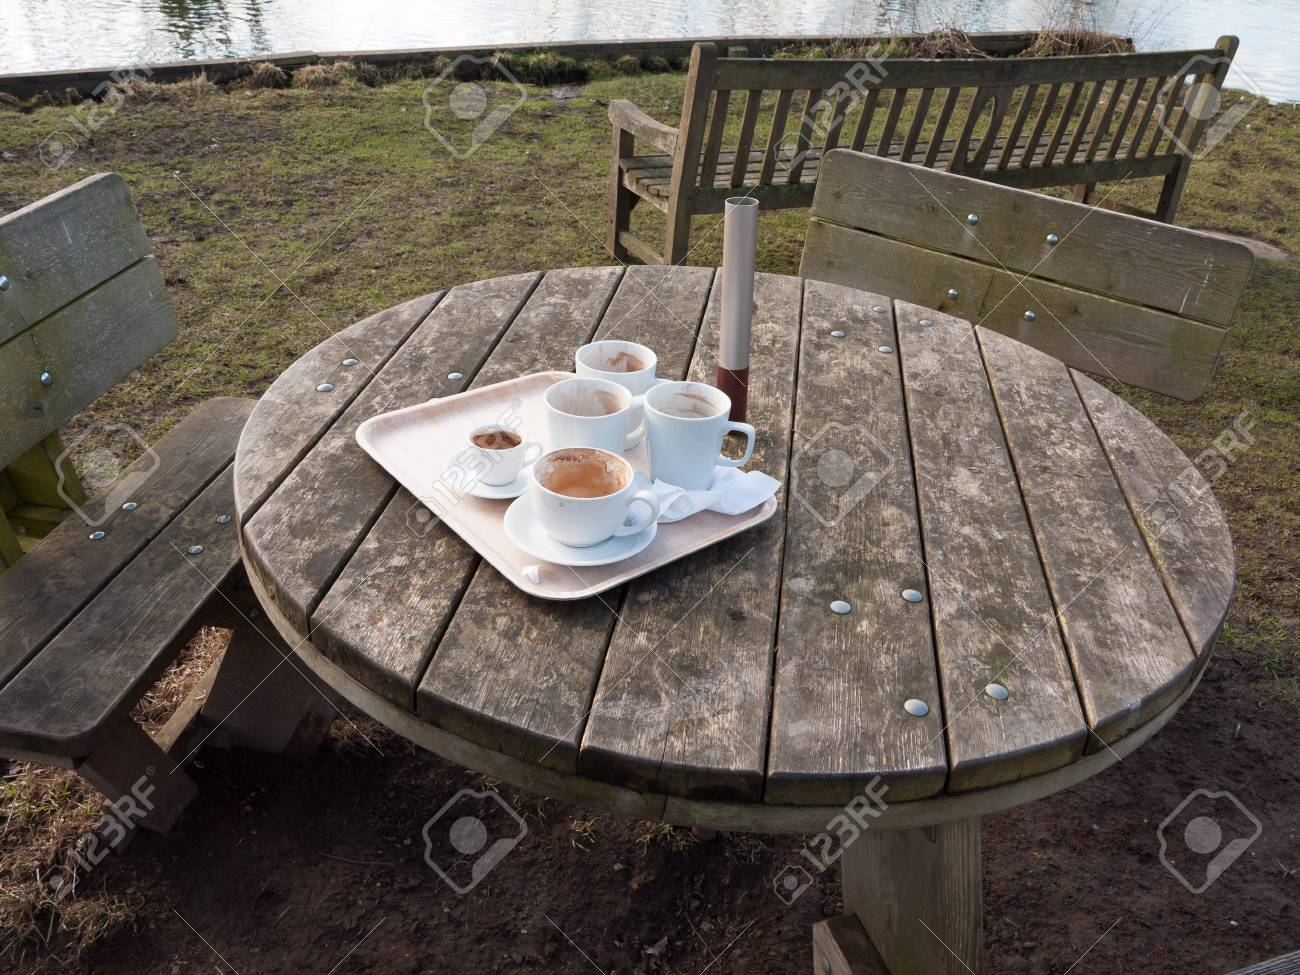 Used White Cups On Tray Wooden Table Outside Cafe Essex Stock